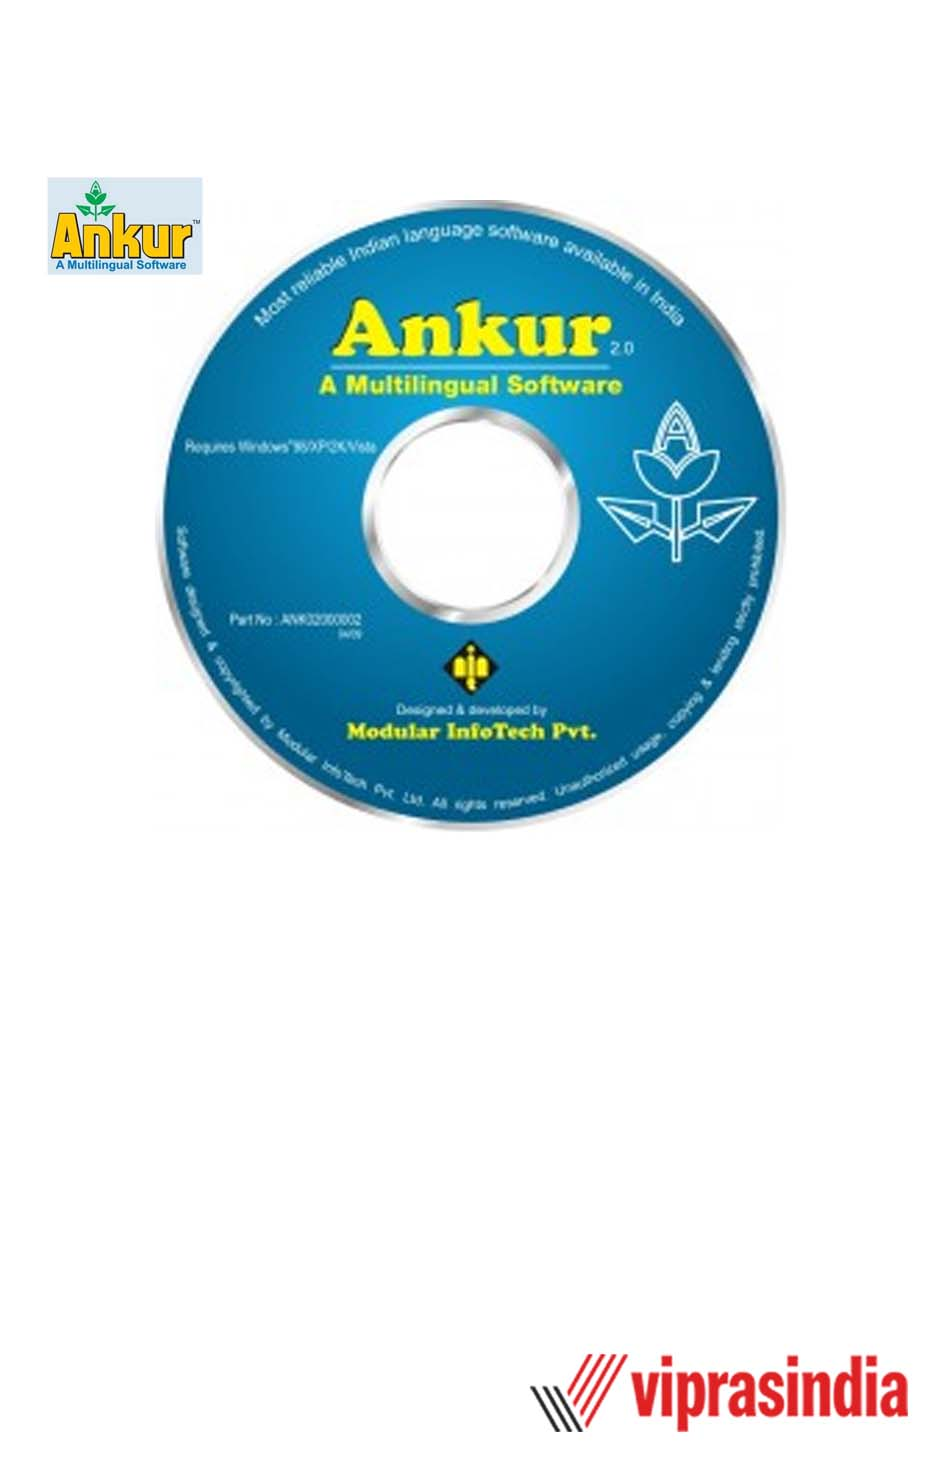 Ankur Multilingual Software